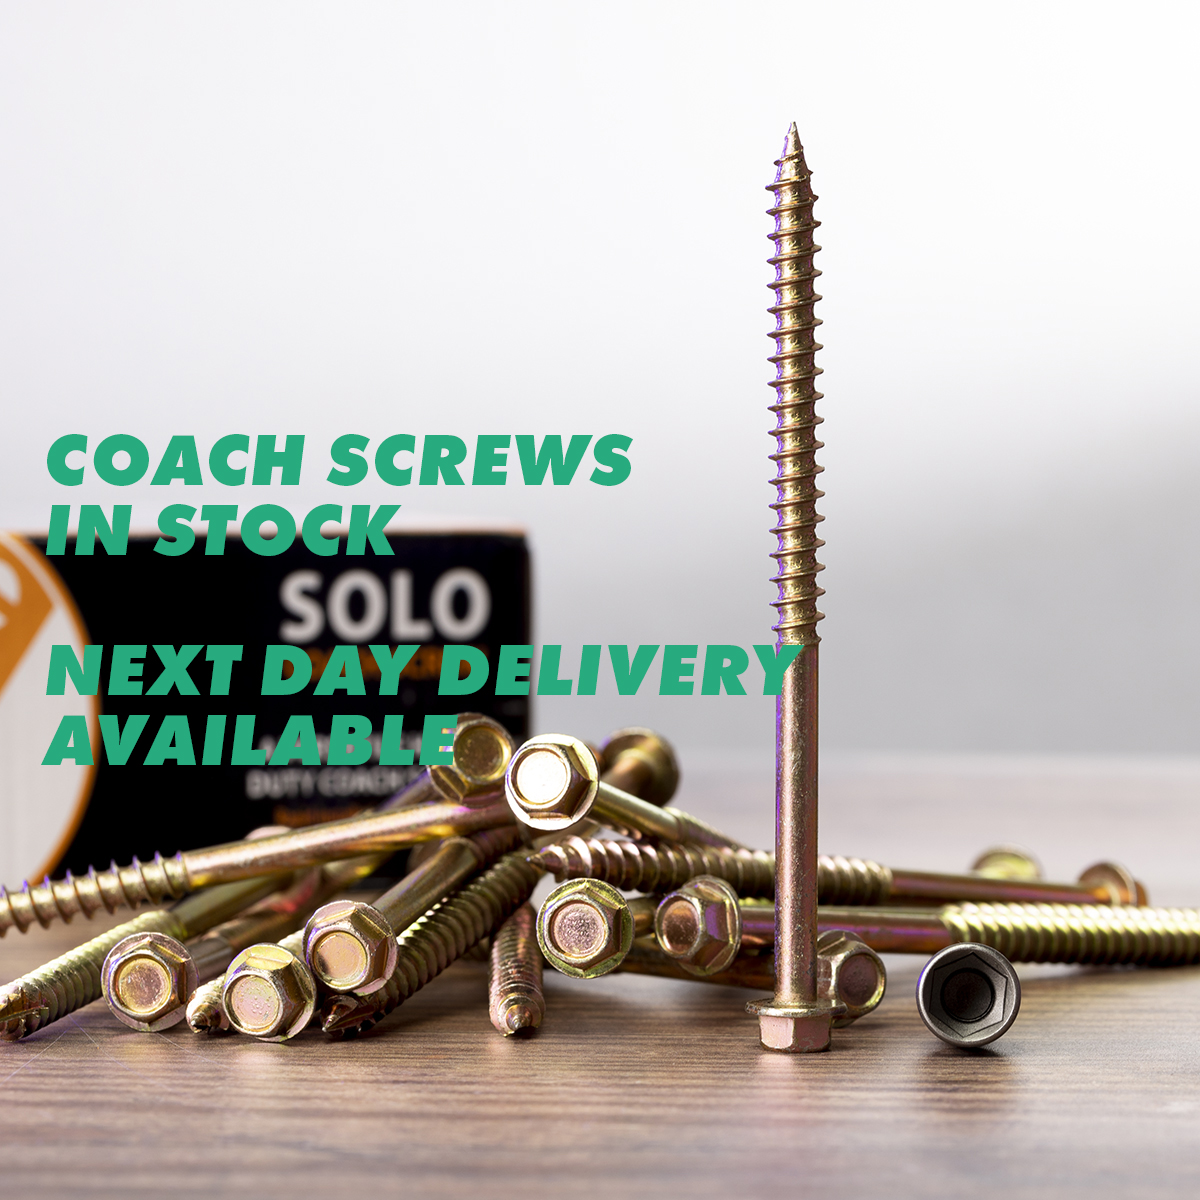 COACH SCREWS UK IN STOCK